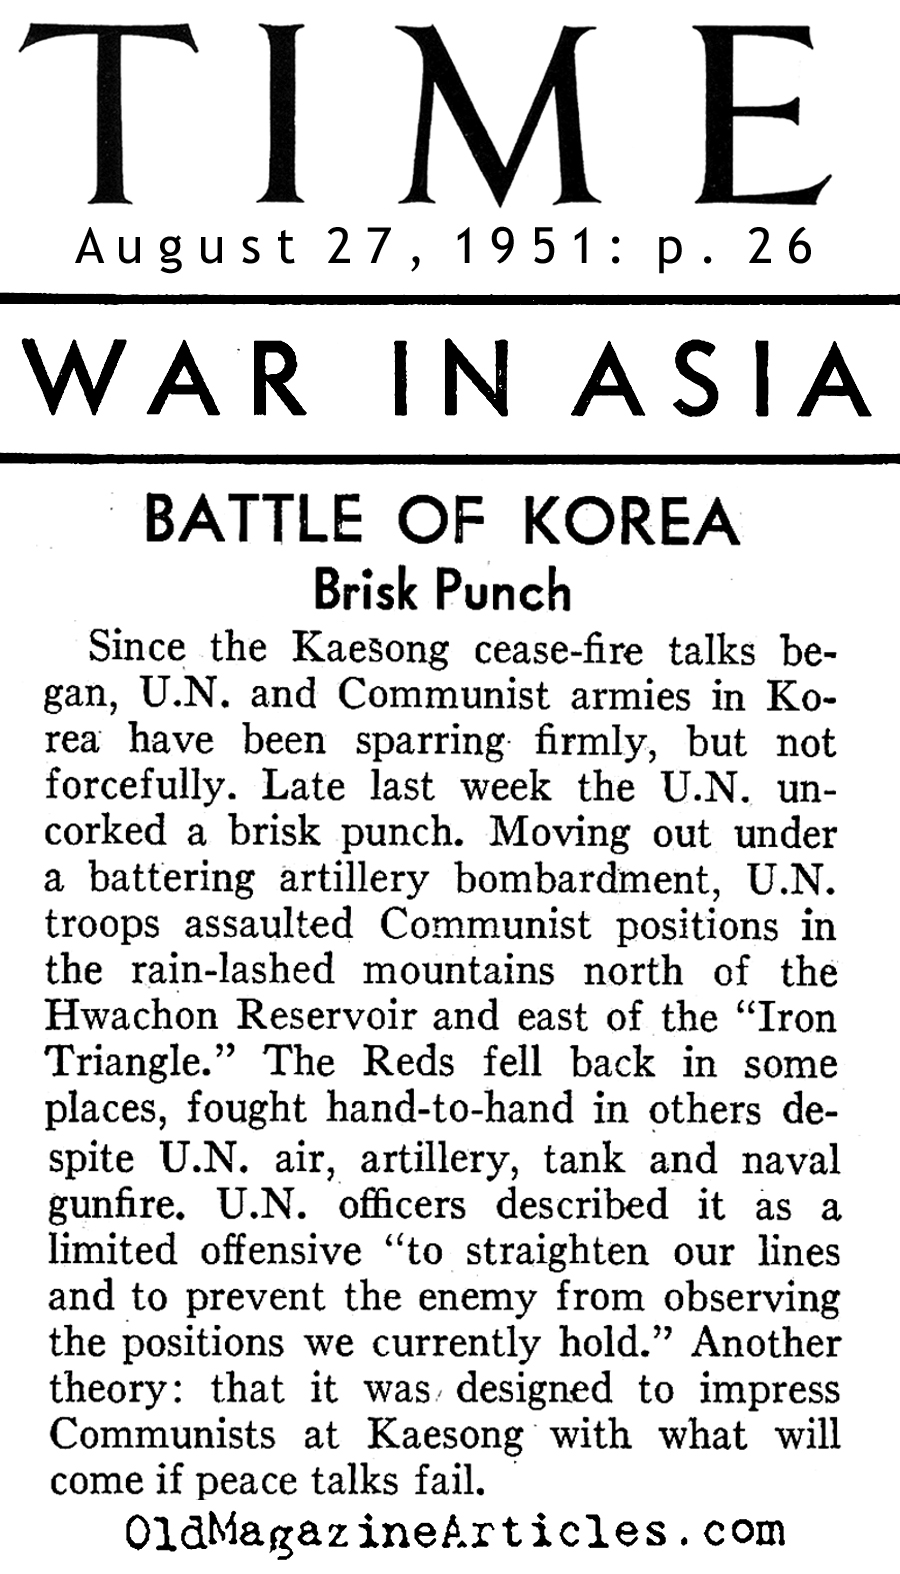 The Kaesong Cease-Fire (Time Magazine, 1951)